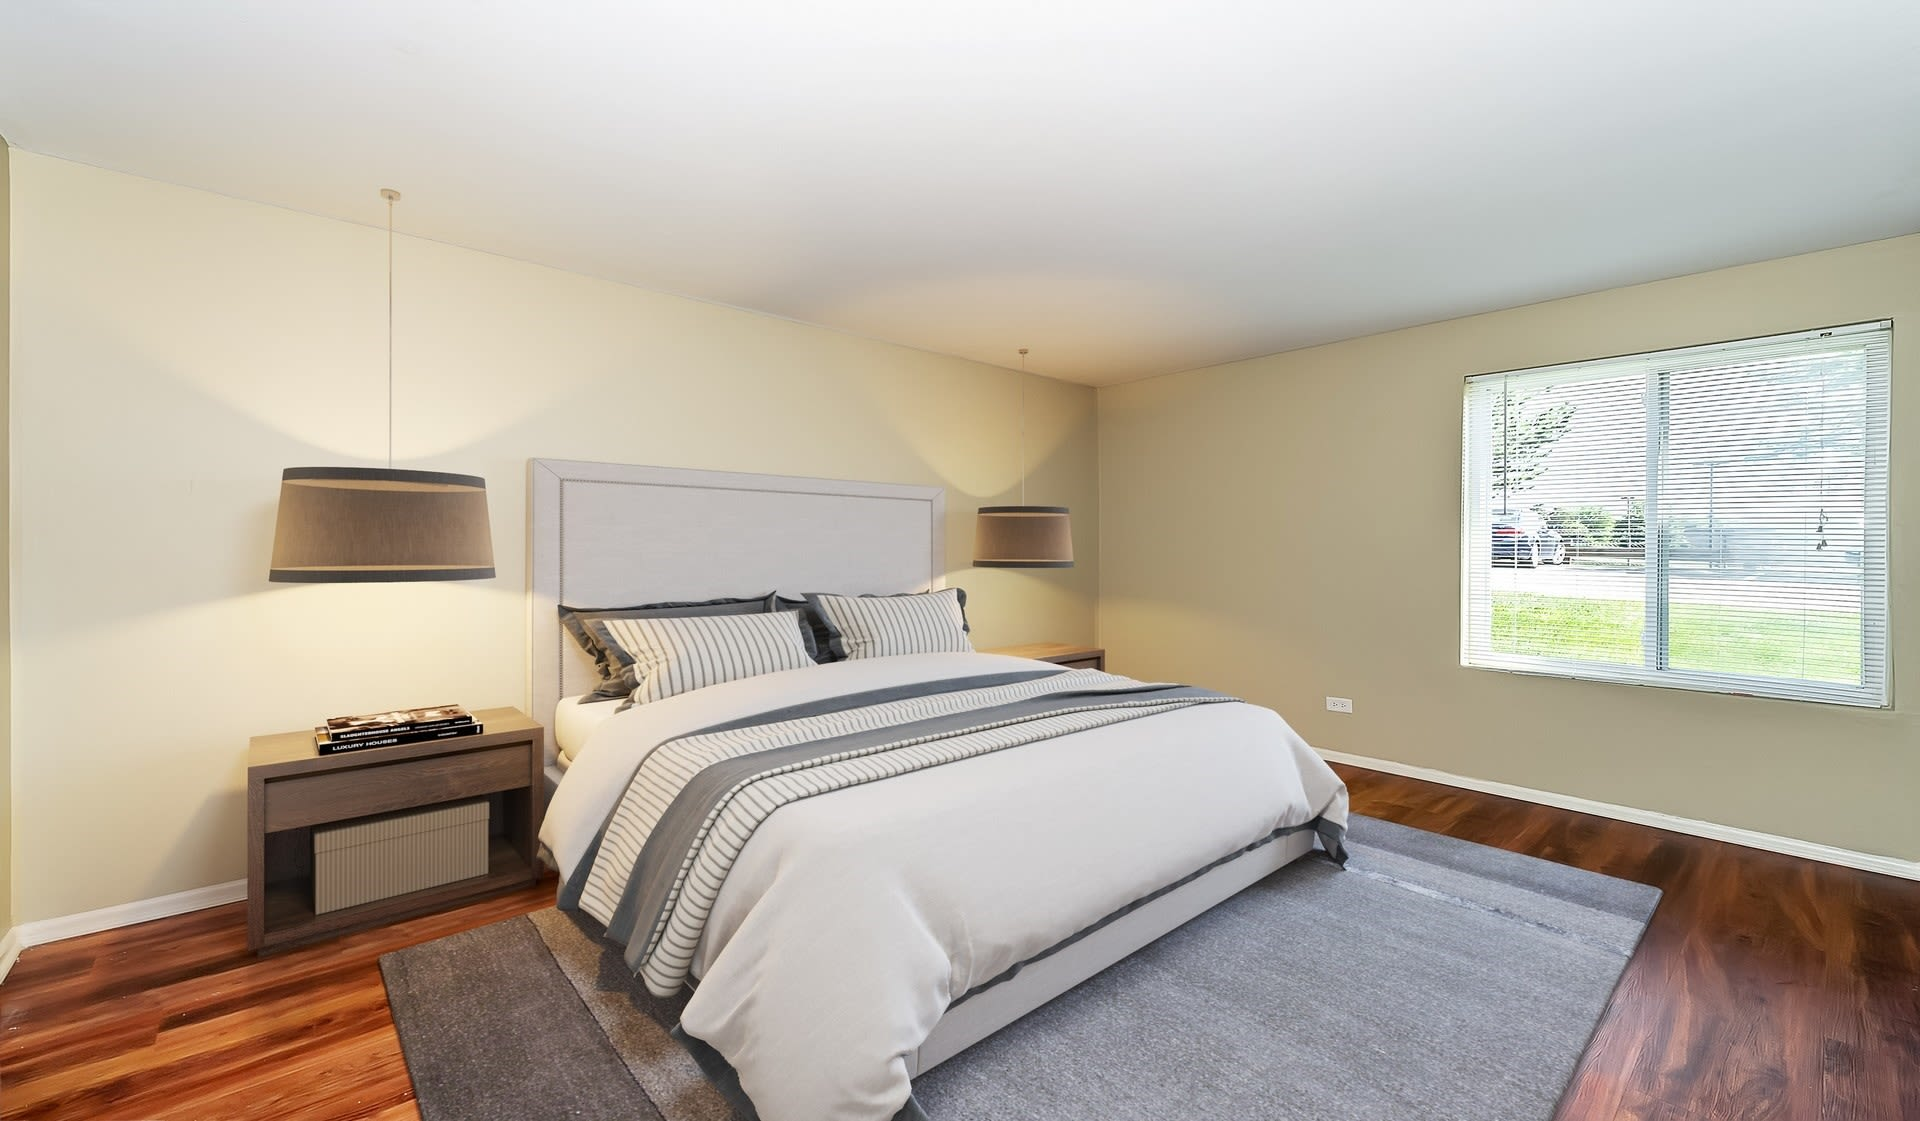 Large master bedroom with a window for natural lighting at Lakeside Apartments in Lisle, Illinois